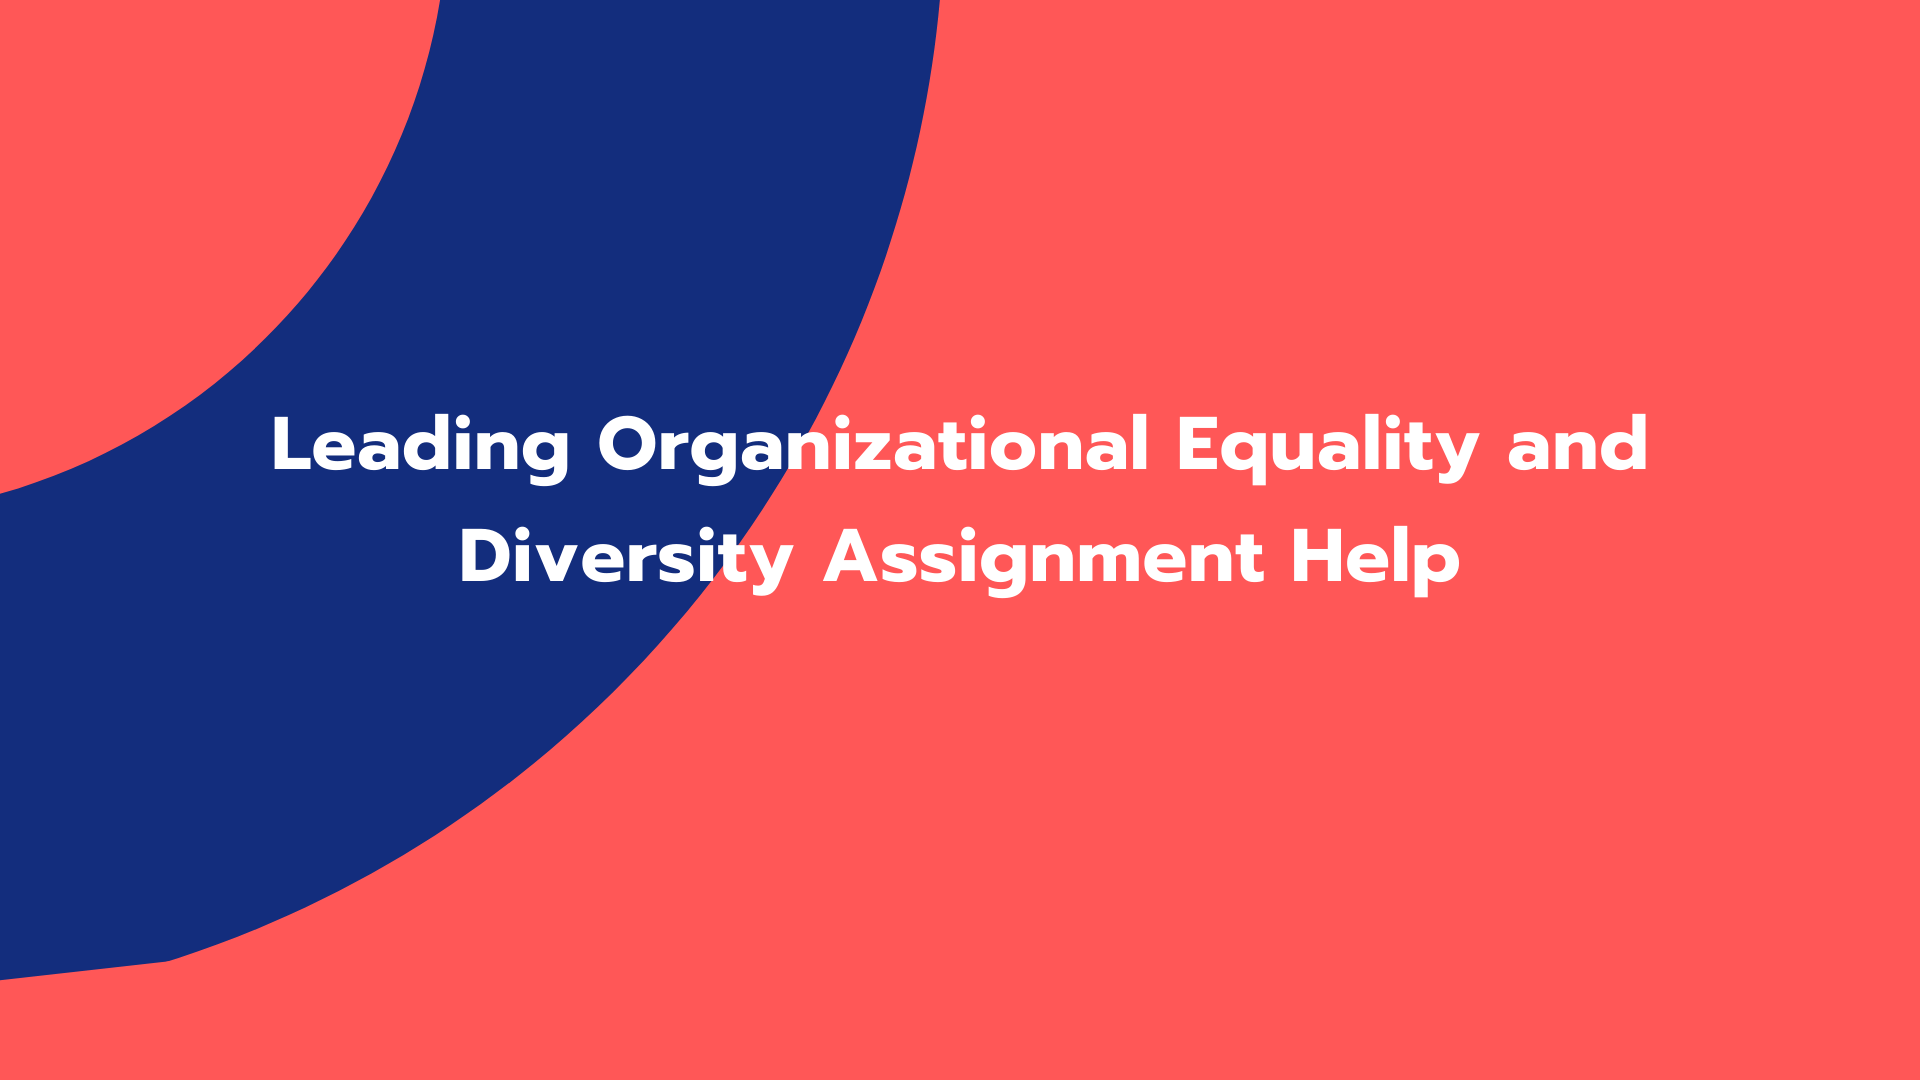 Leading Organizational Equality and Diversity Assignment Help